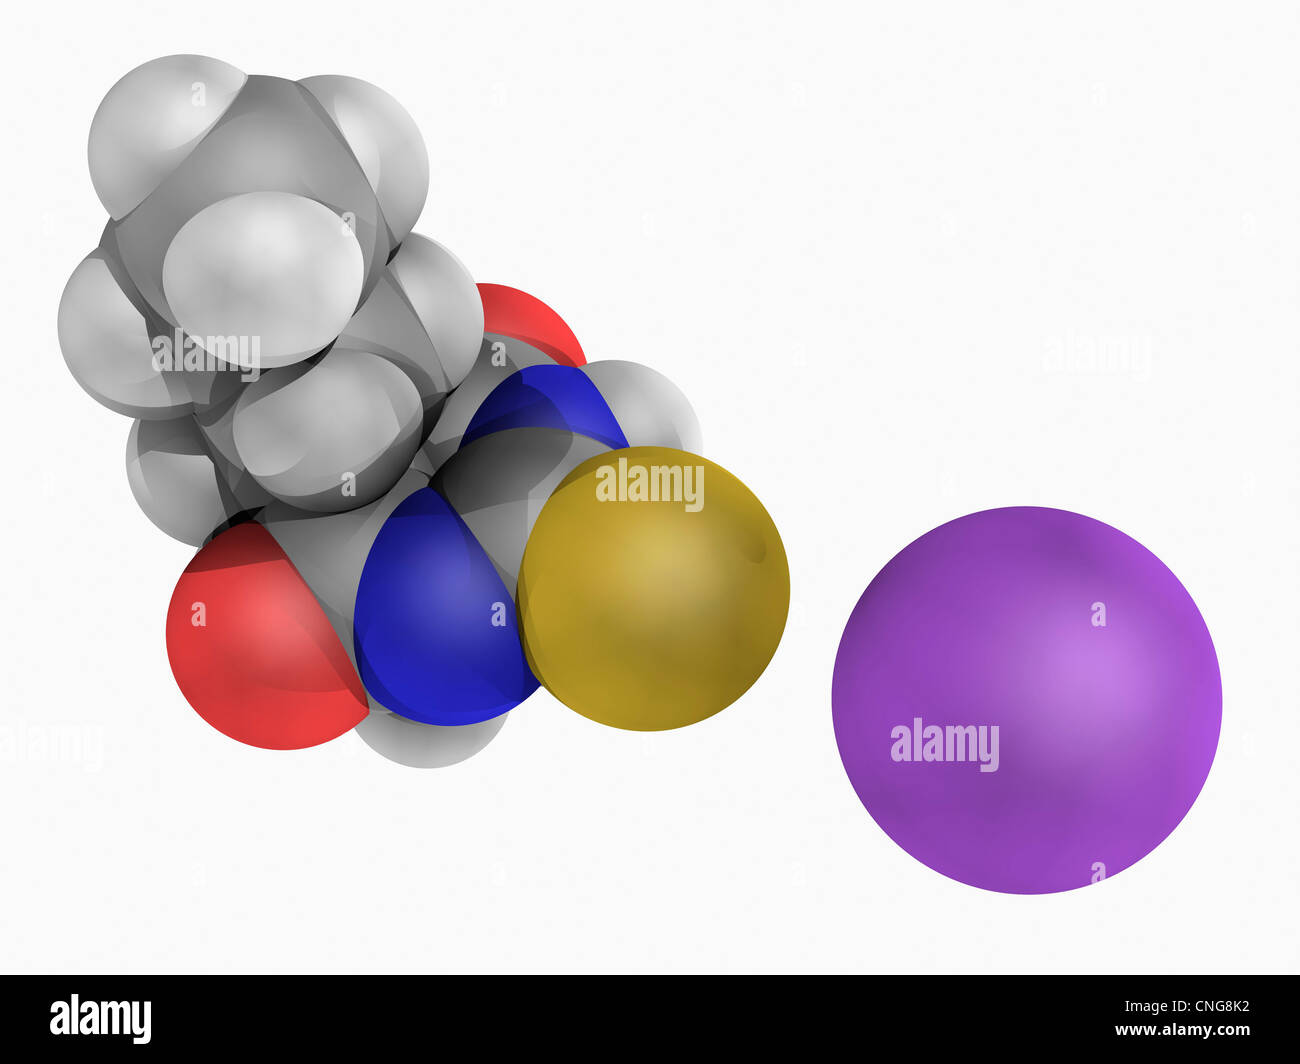 Sodium thiopental drug molecule - Stock Image